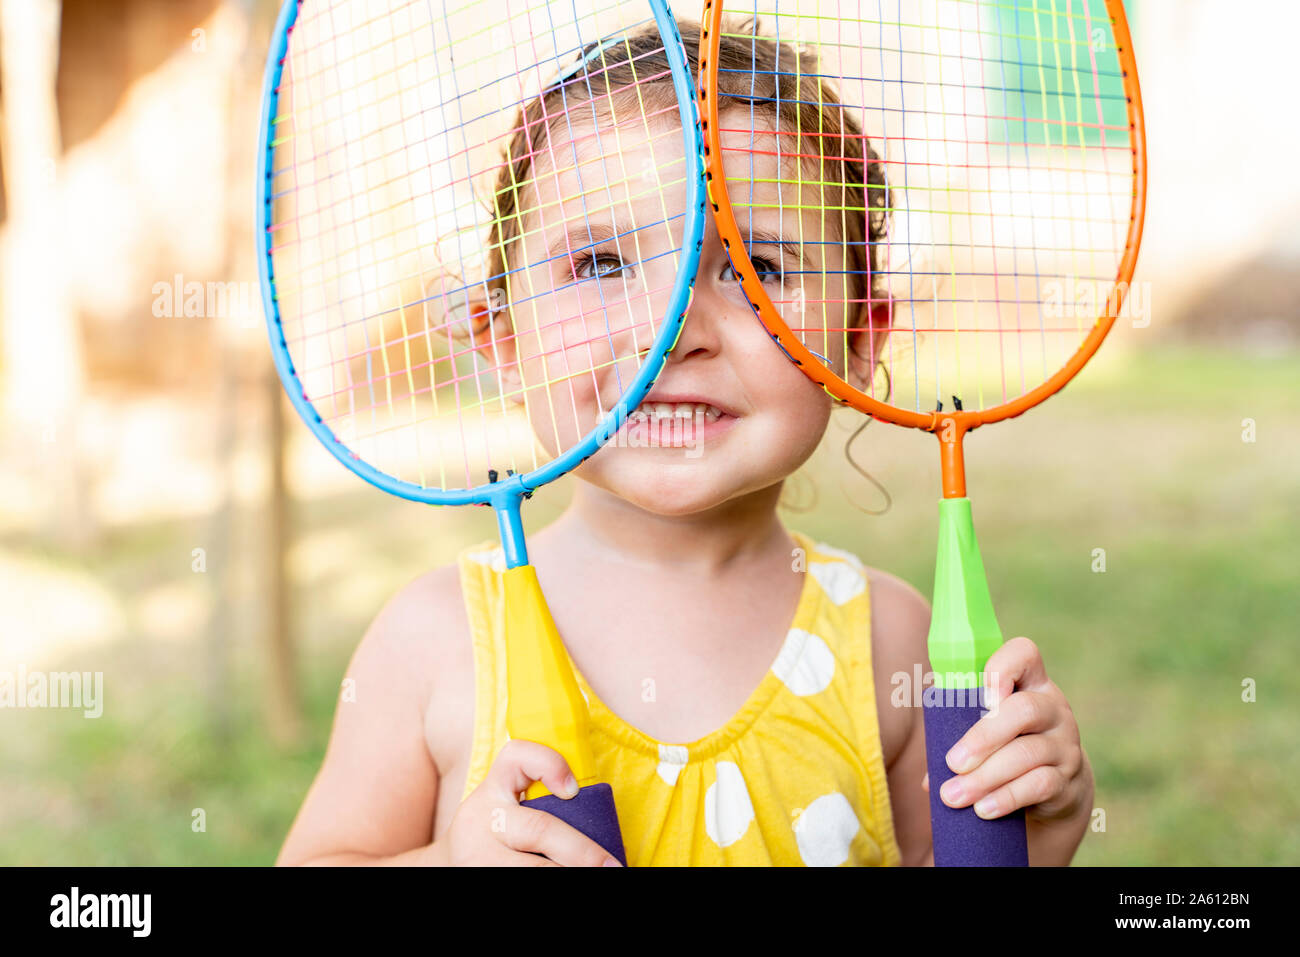 Little girl playing with colorful badminton rackets outdoors in summer Stock Photo